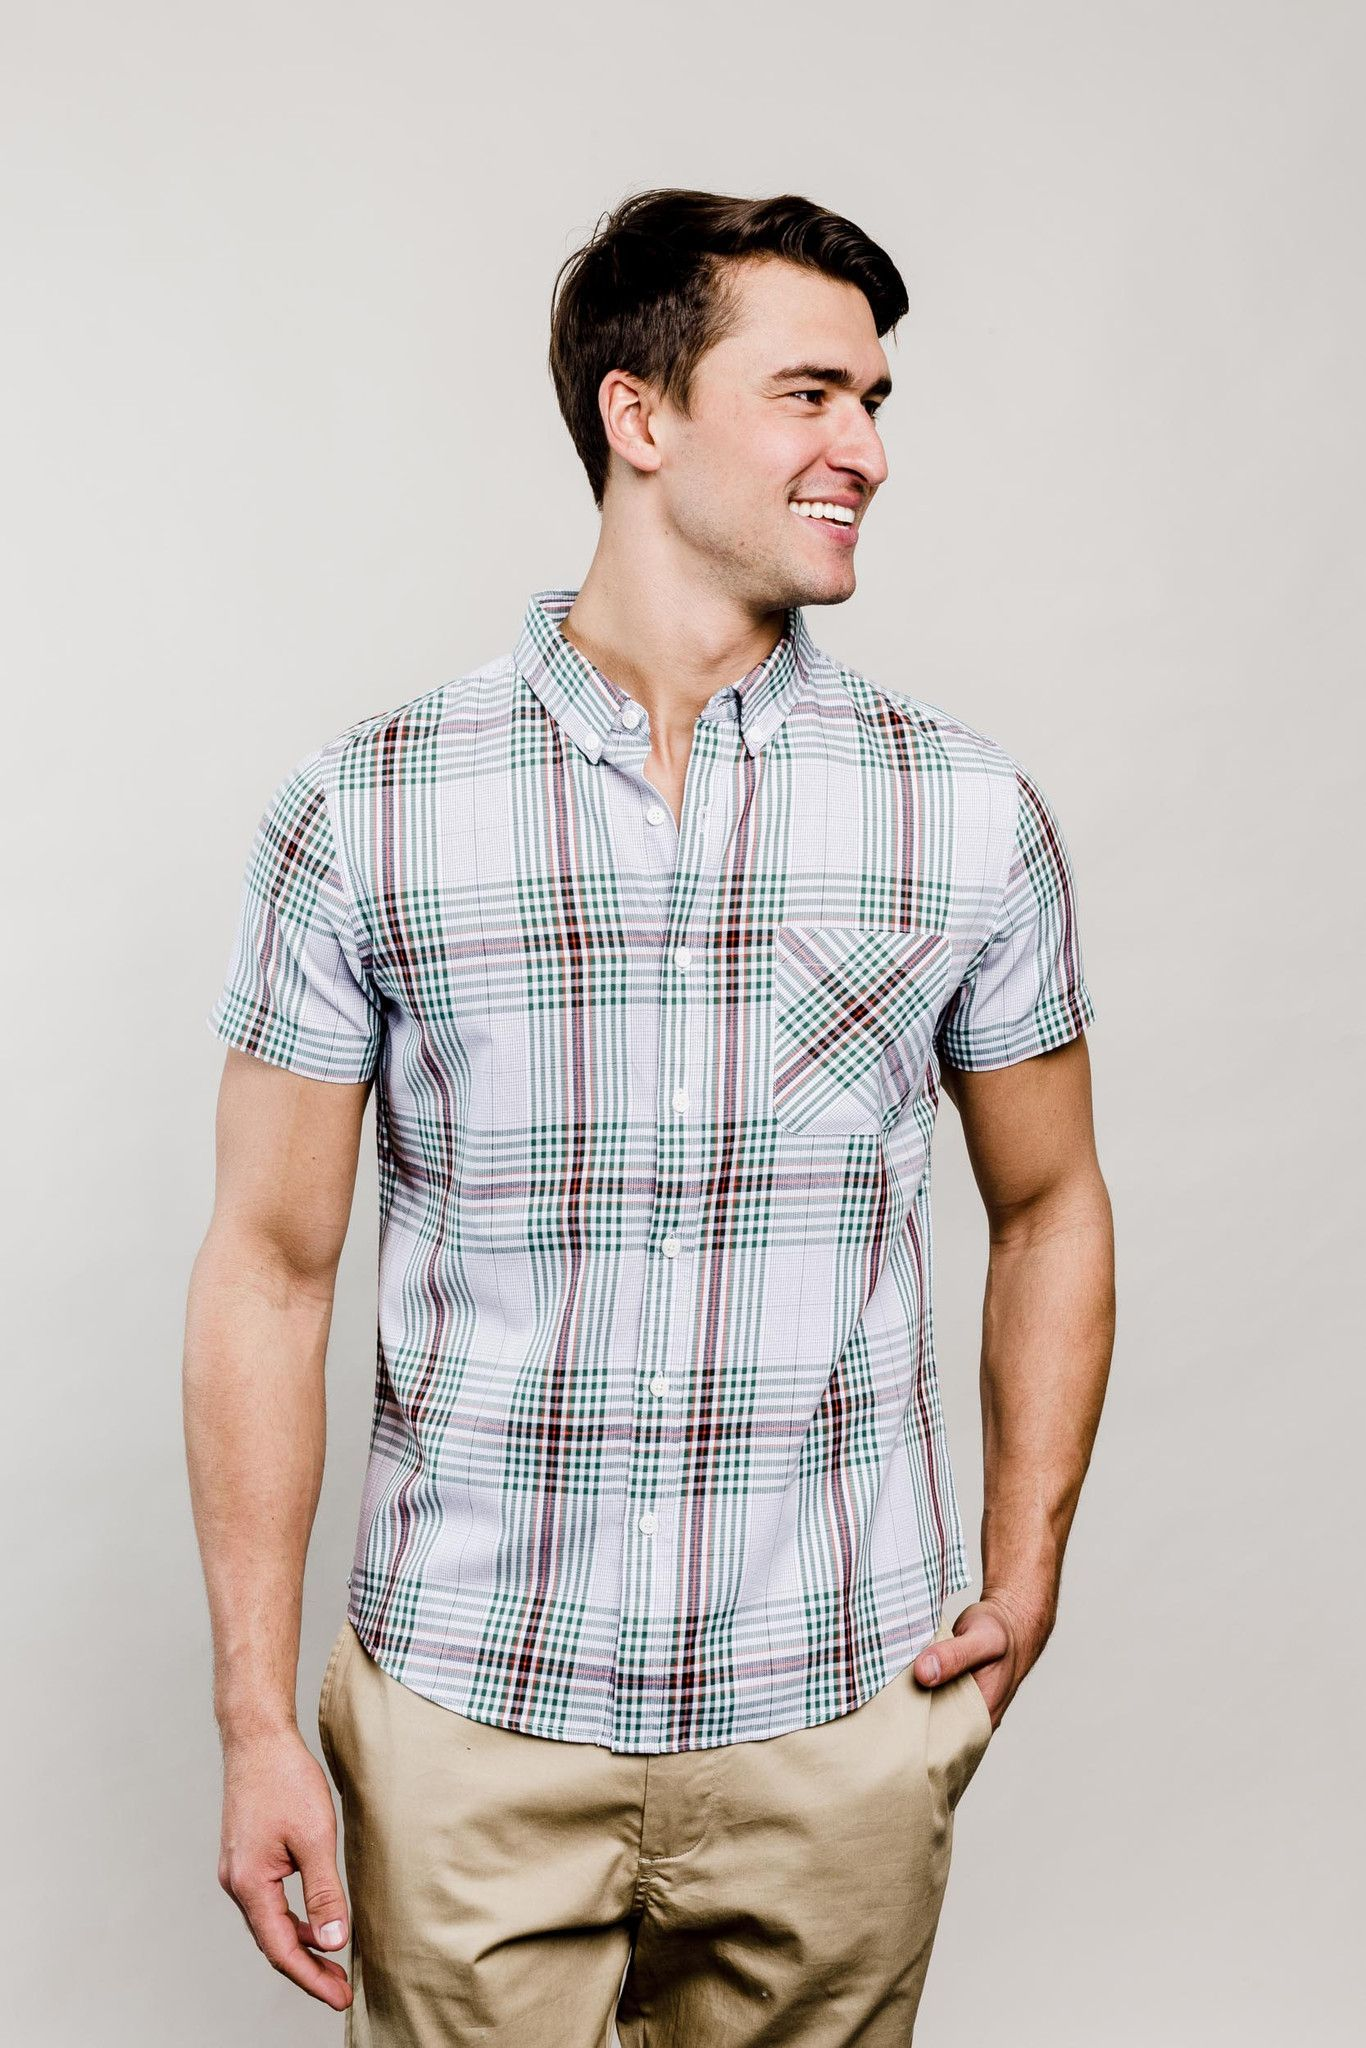 Flannel shirt and shorts men  Thunderhead Plaid Button Down  Products  Pinterest  Plaid and